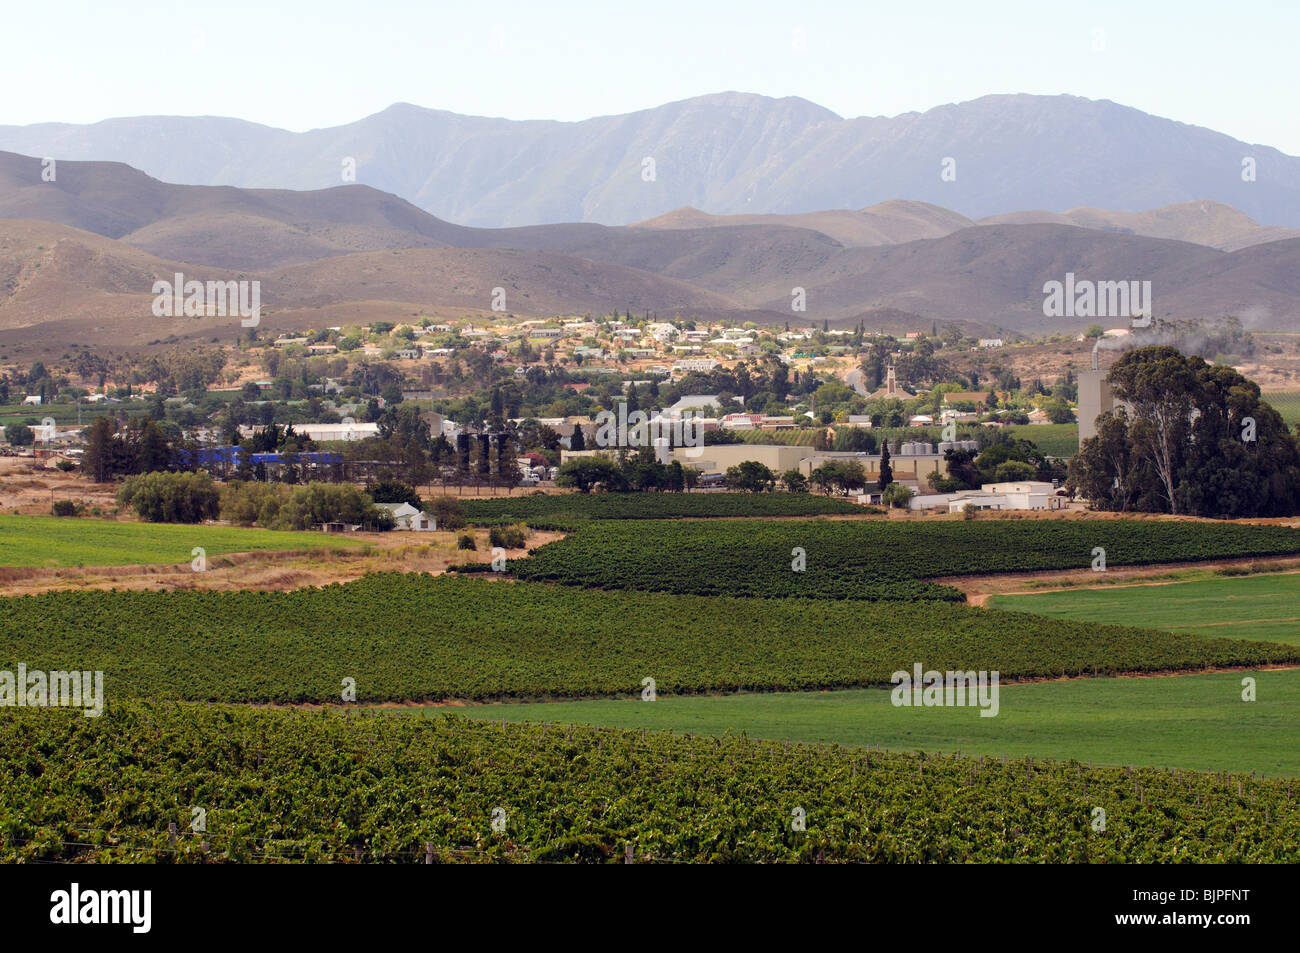 Bonnievale below the Riviersonderend Mountains a wine producing town surrounded by vines in the Breede River region - Stock Image